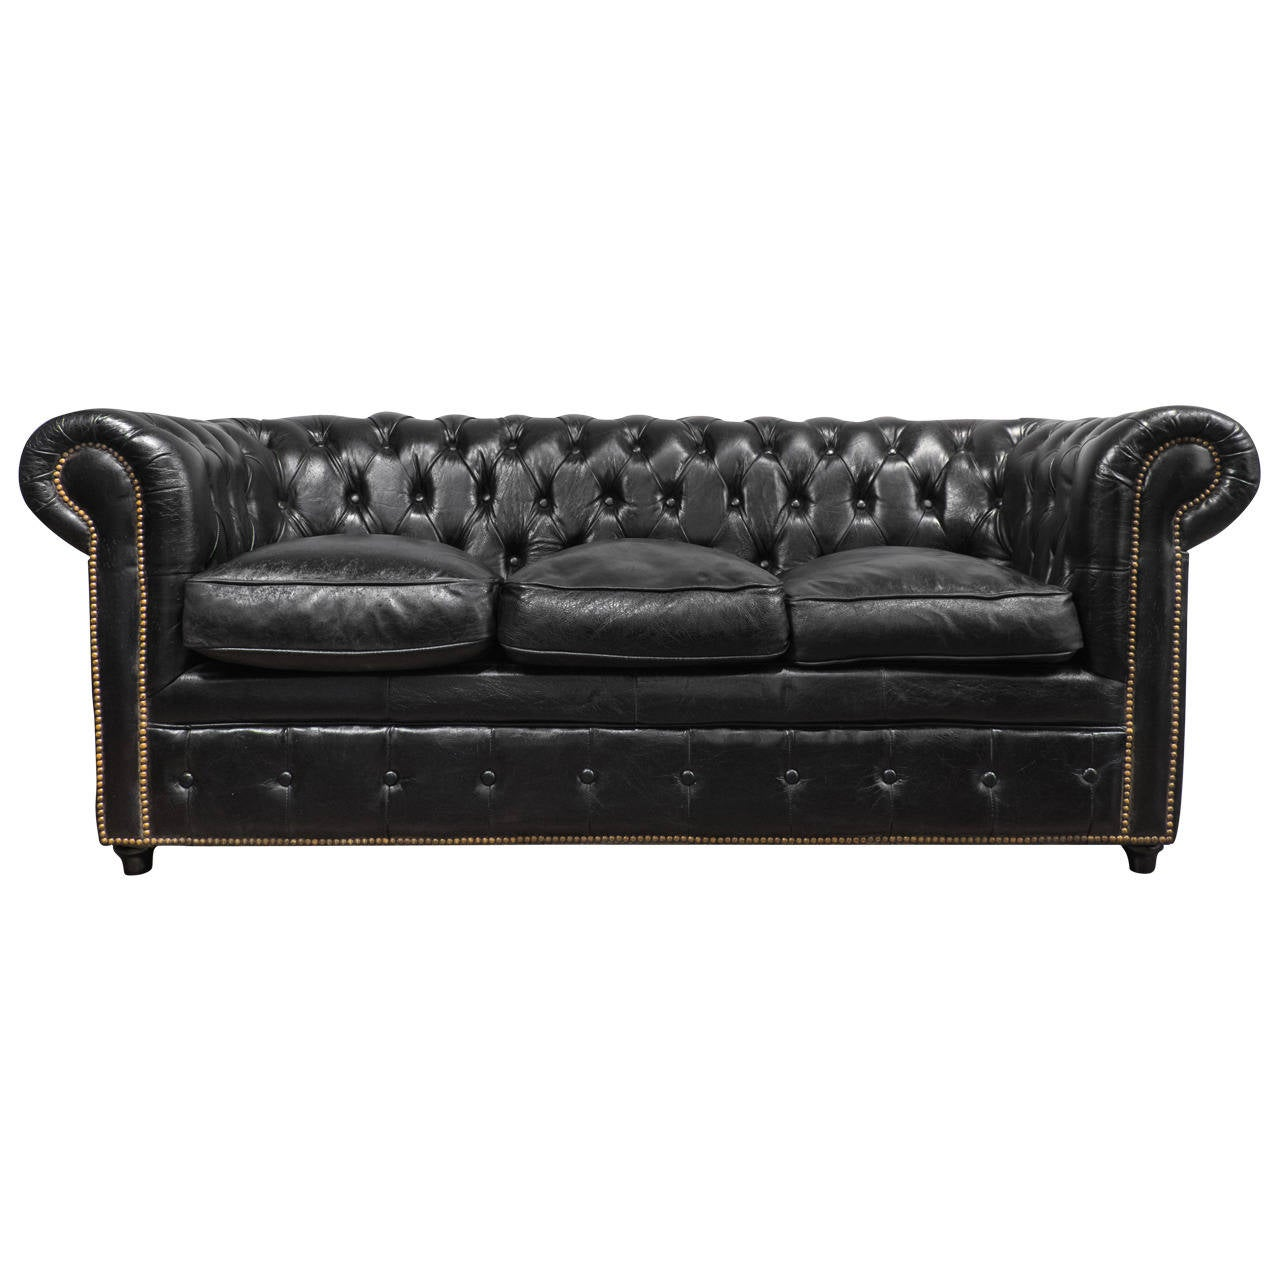 Vintage black leather chesterfield sofa at 1stdibs for Decor jewelry chesterfield